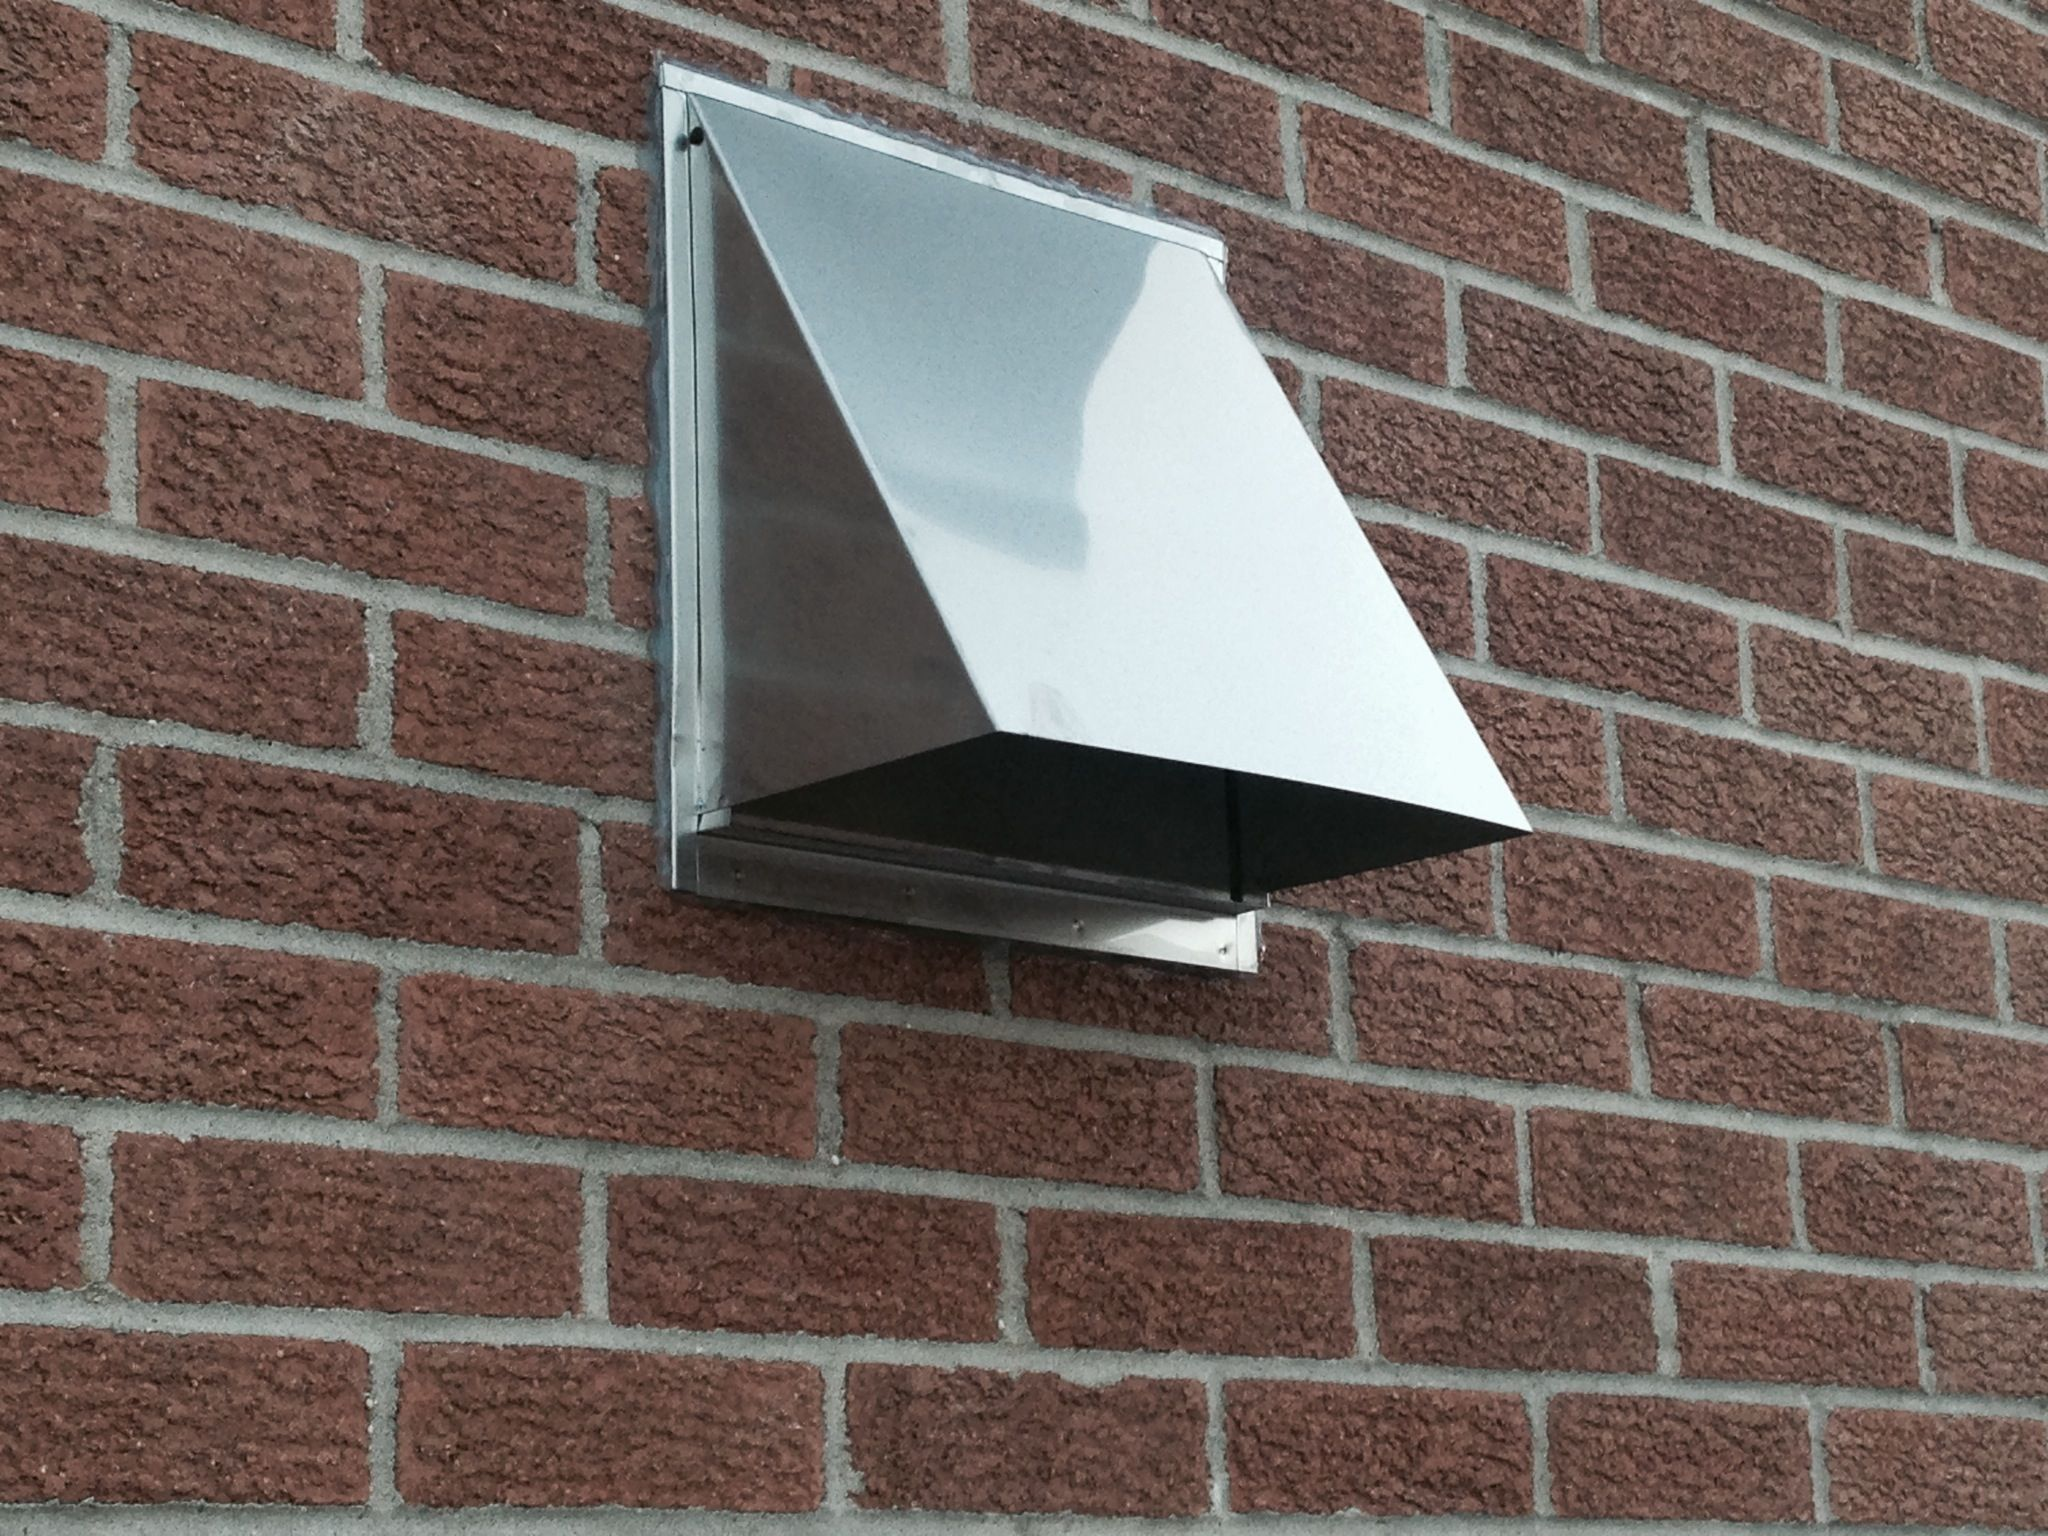 kitchen exhaust vent cover aid mixer exterior wall covers coverings in 2018